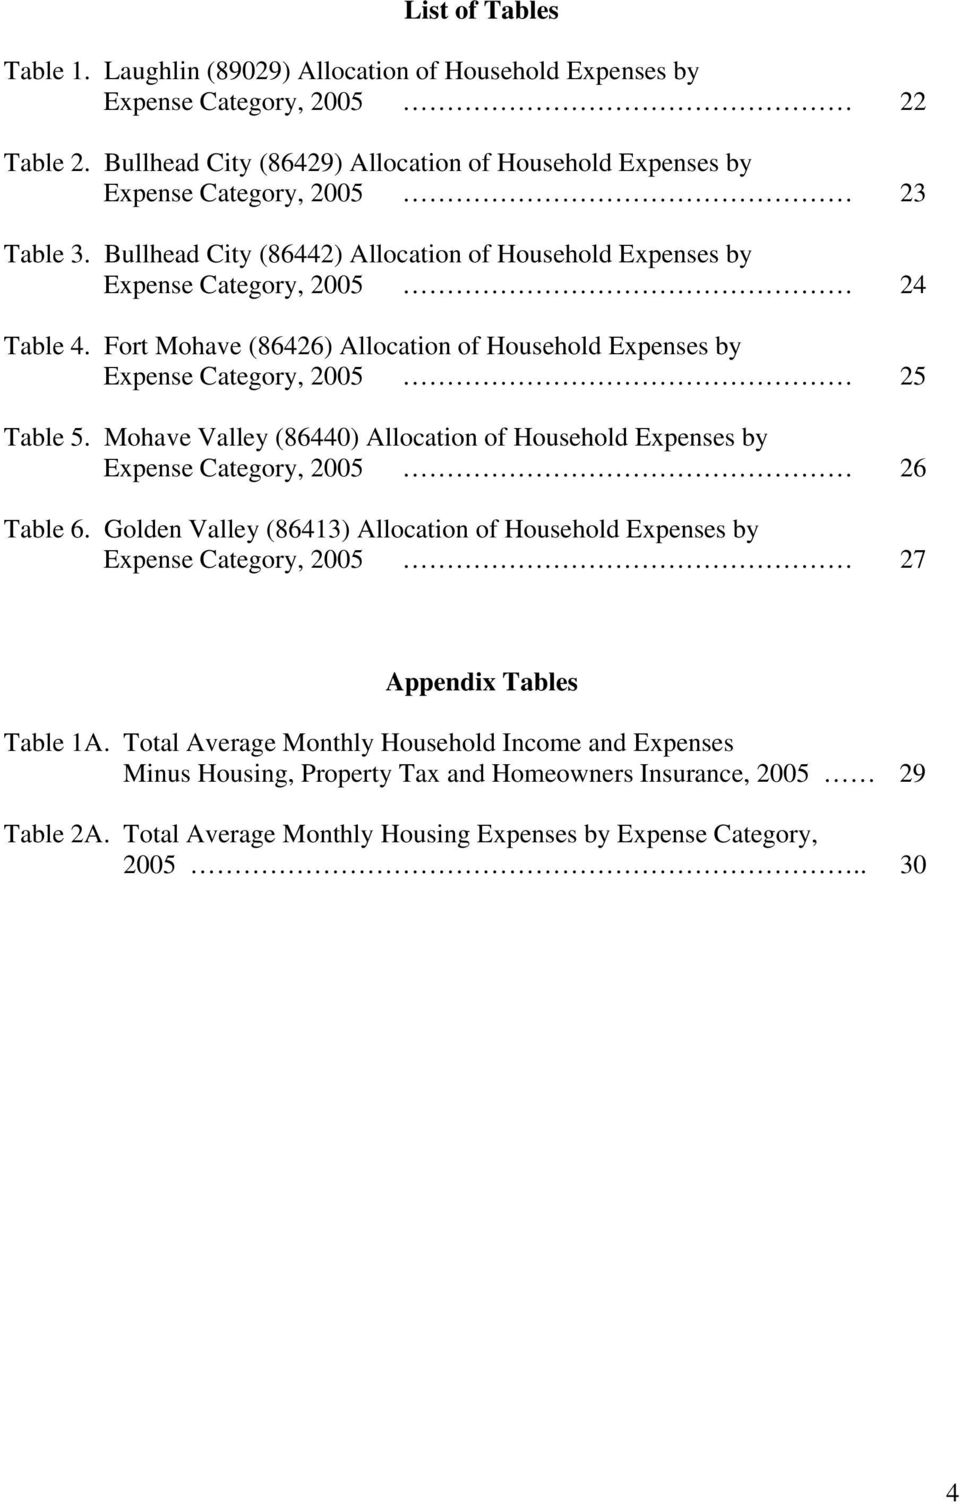 Fort Mohave (86426) Allocation of Household Expenses by Expense Category, 2005 25 Table 5. Mohave Valley (86440) Allocation of Household Expenses by Expense Category, 2005 26 Table 6.